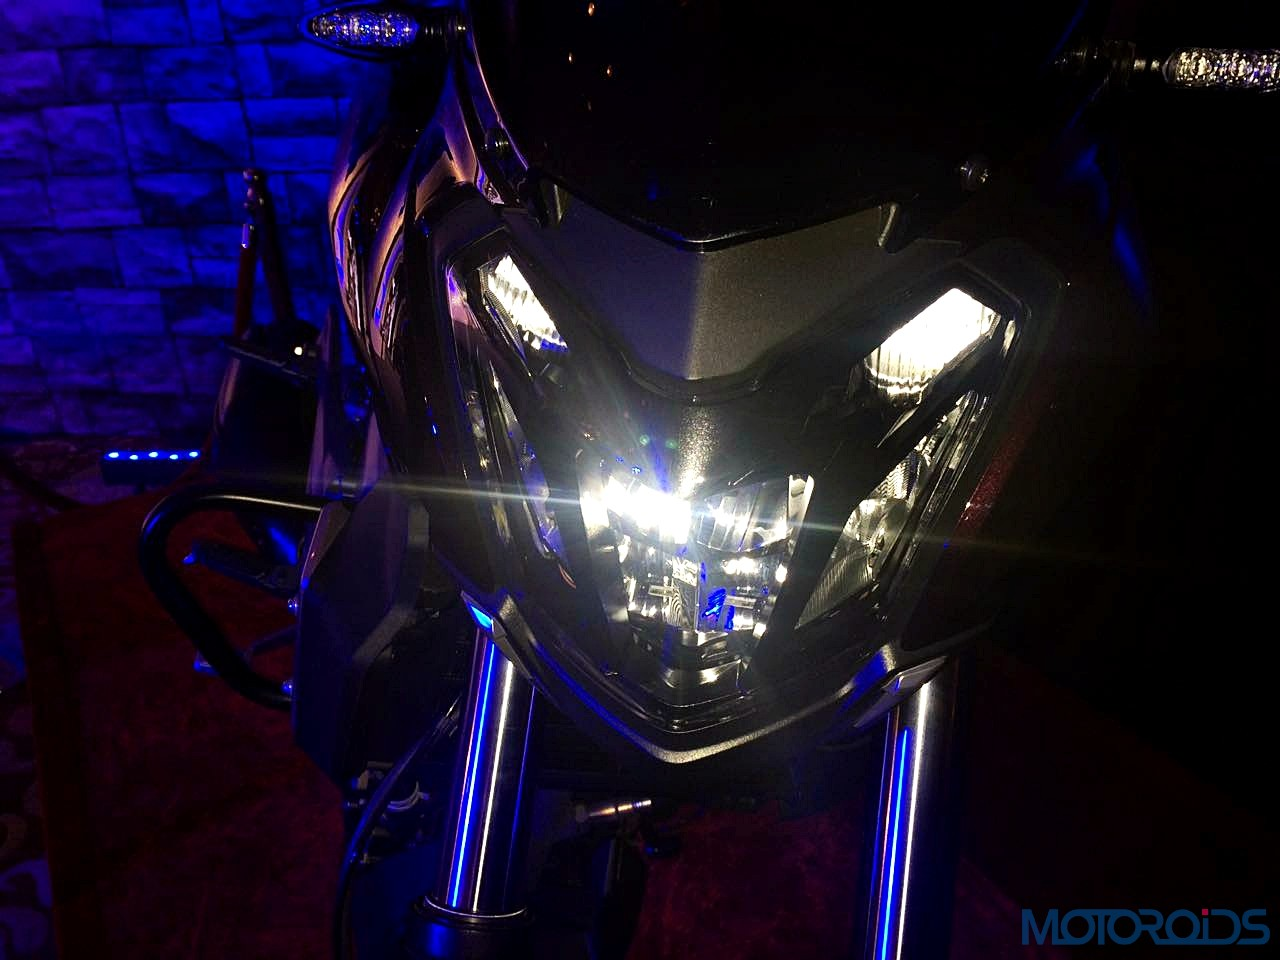 bajaj-Dominar-India-Launch-Images-12